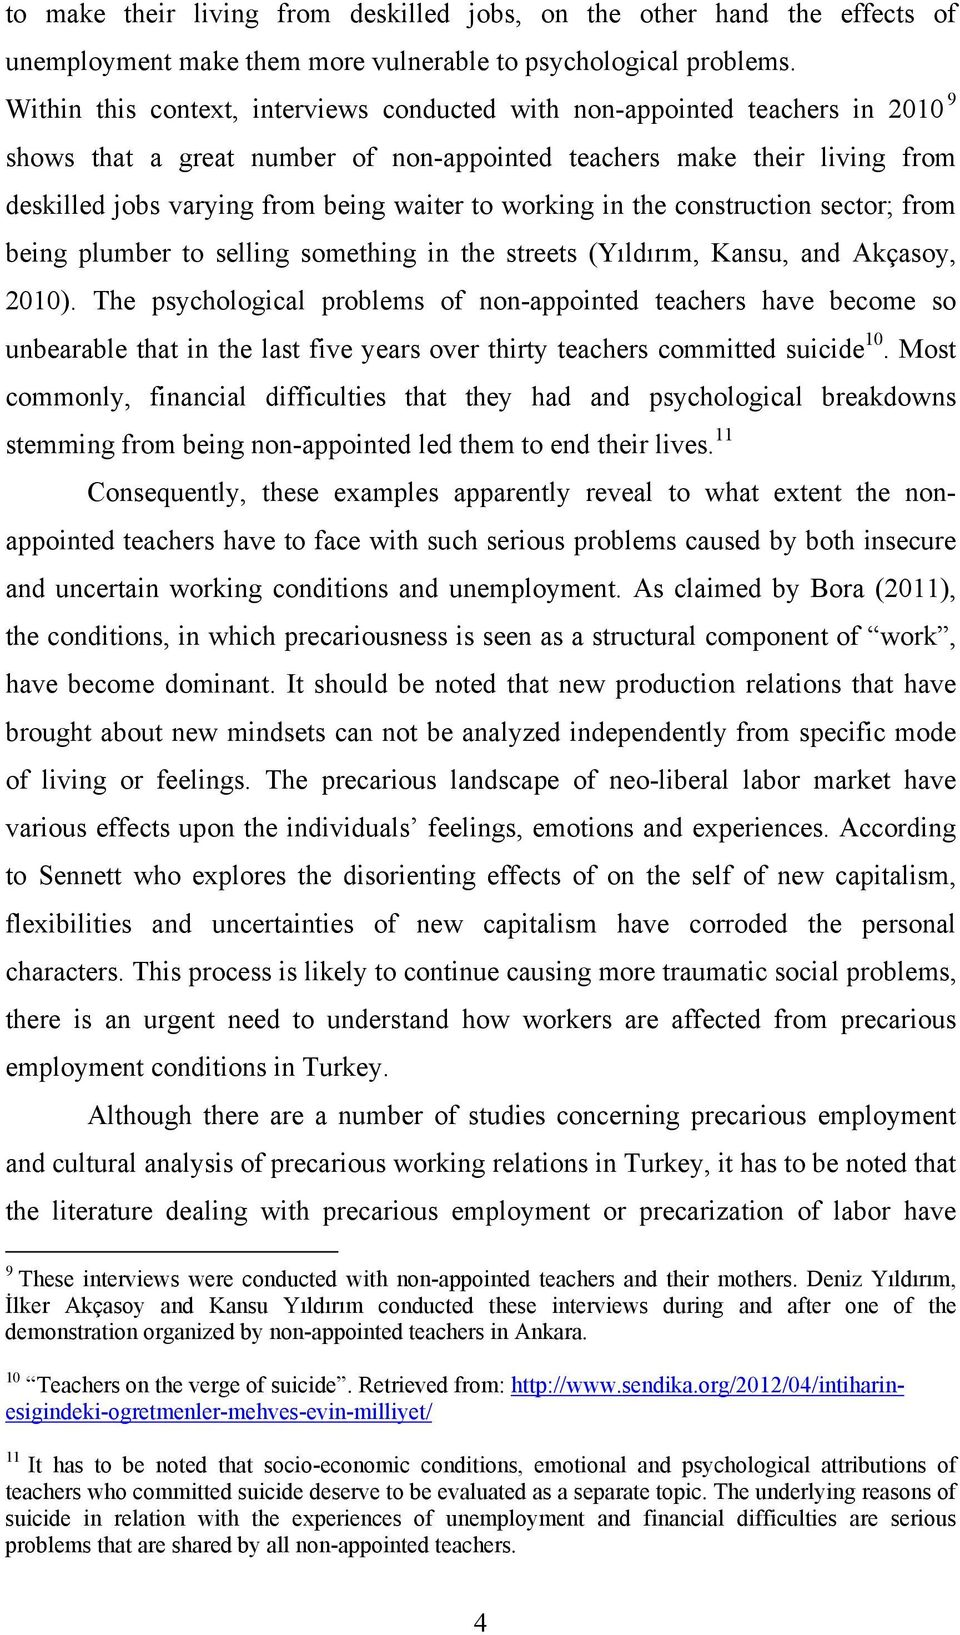 working in the construction sector; from being plumber to selling something in the streets (Yıldırım, Kansu, and Akçasoy, 2010).